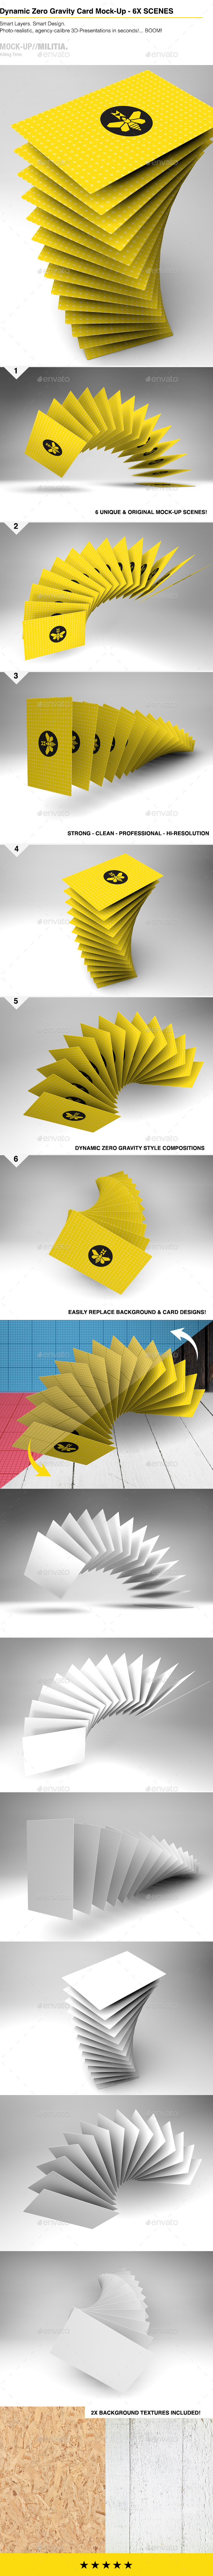 GraphicRiver Floating Flying Gravity Business Card Mock-Up 10299619